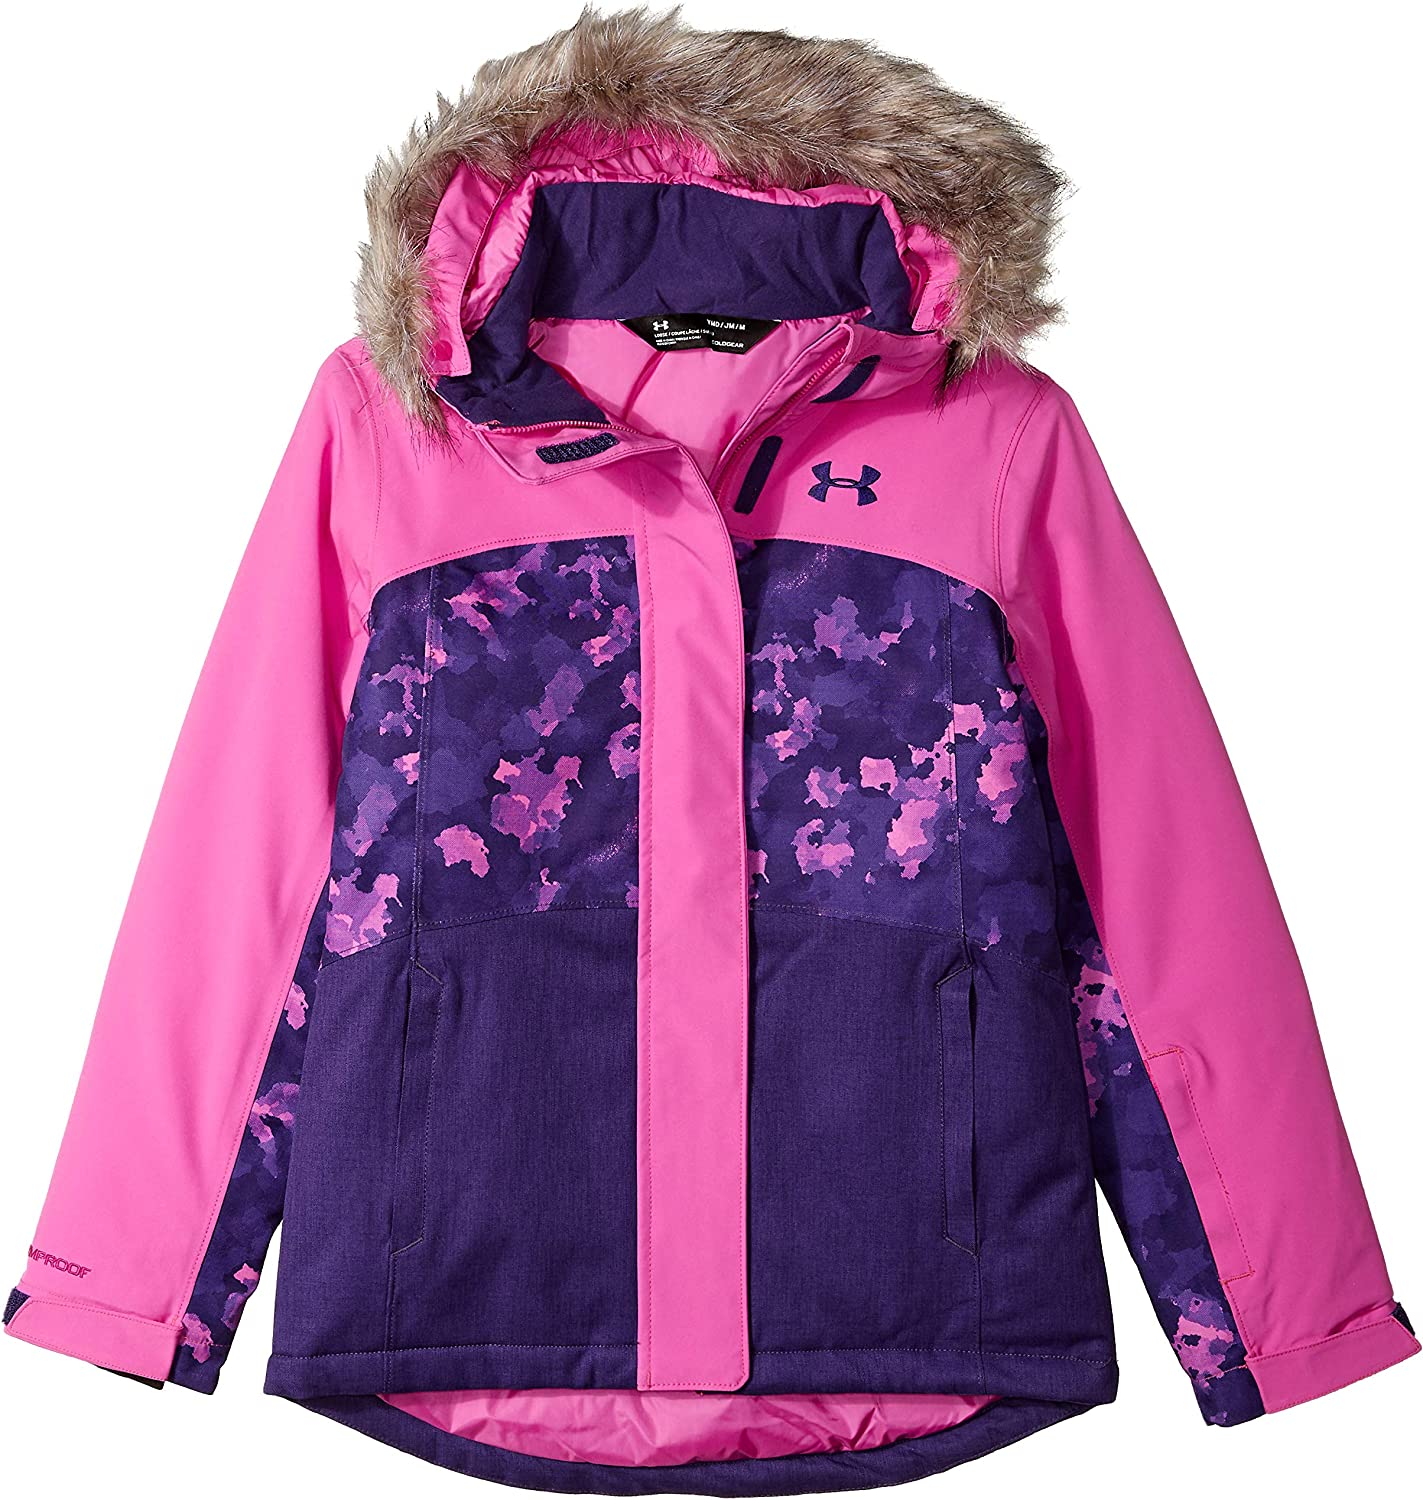 Encogimiento paso toxicidad  Amazon.com: Under Armour Baby Girls' Big ColdGear Max Altitude Ski Jacket:  Clothing